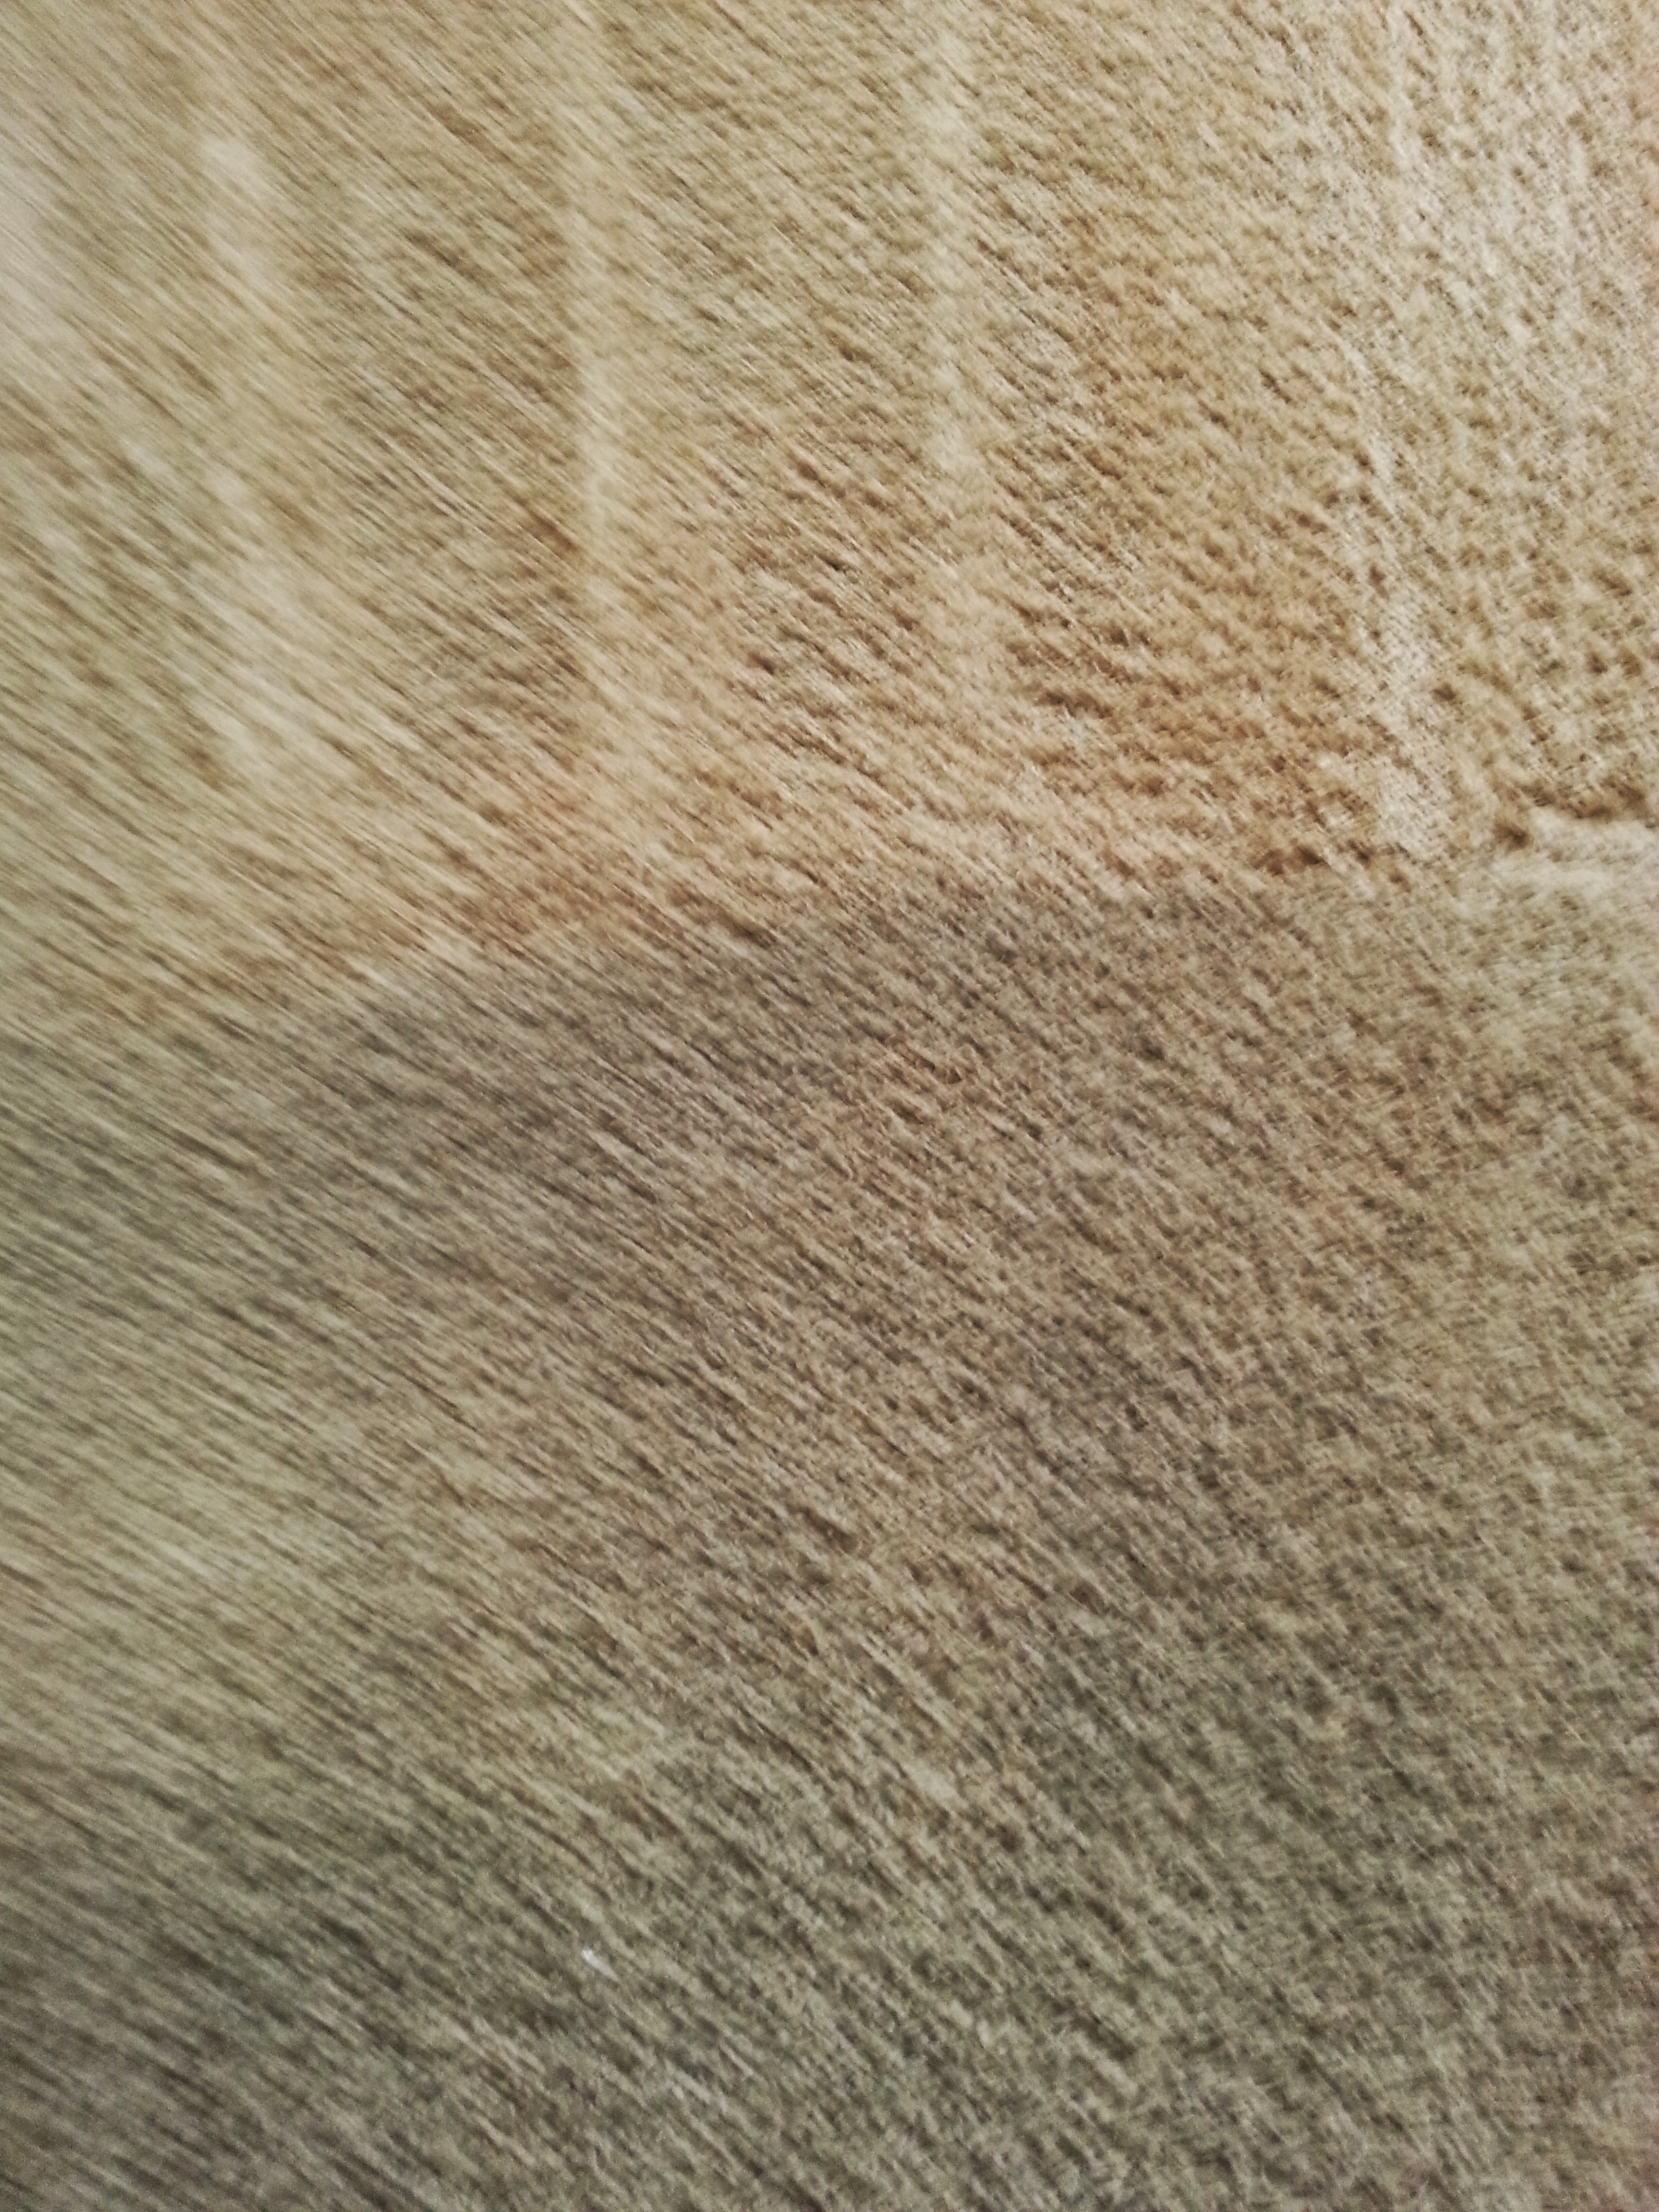 Carpet Cleaning With No Residue Denver